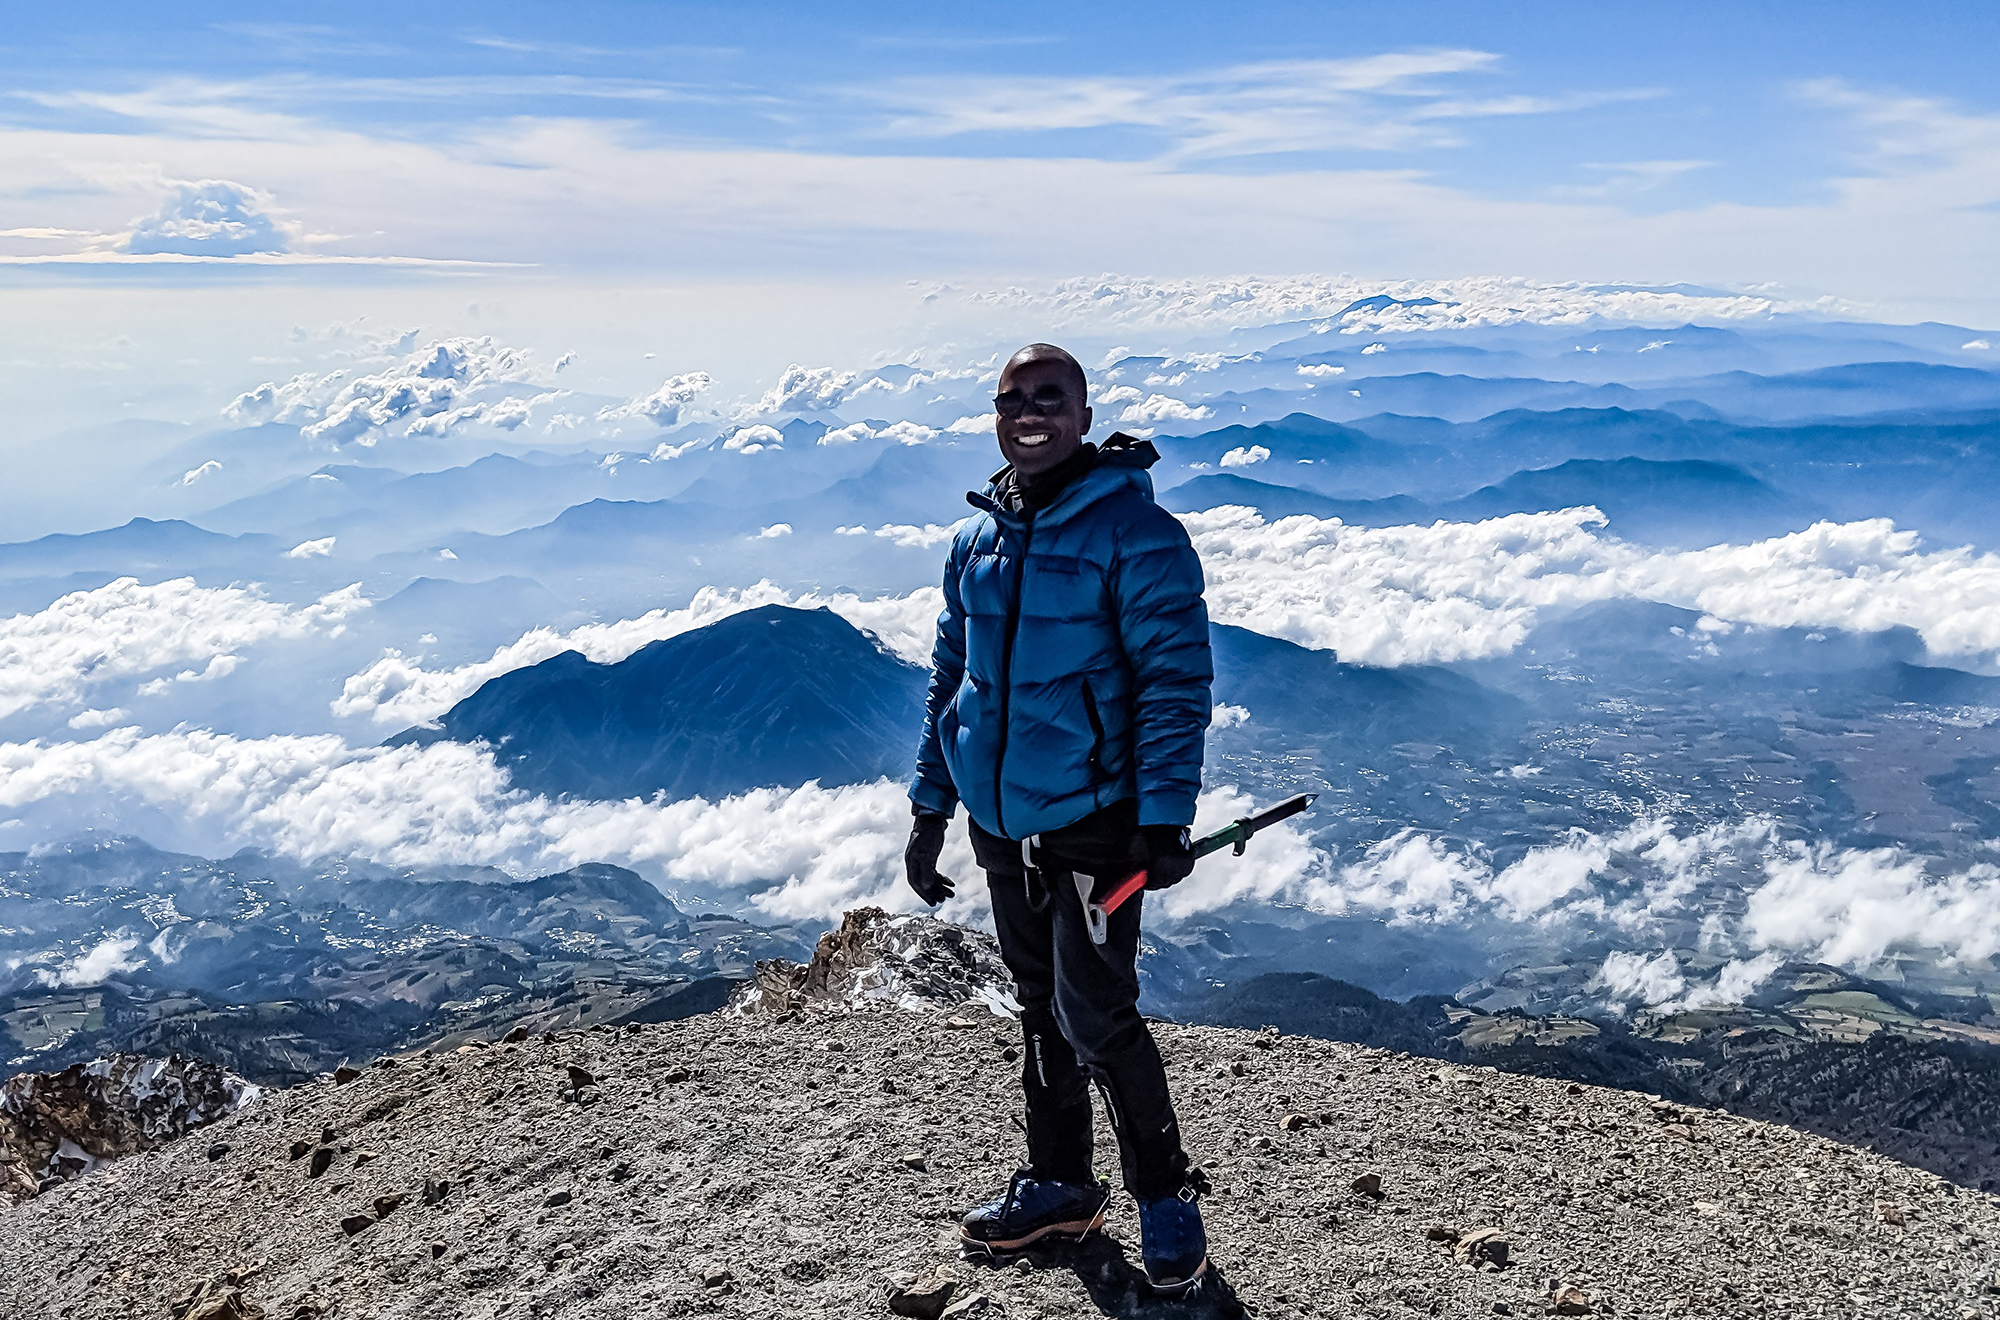 Andrew Alexander King goes on the Blister Podcast to discuss his Between Worlds project, trying to become the first African American to climb the highest mountain and volcano on each continent, and much more